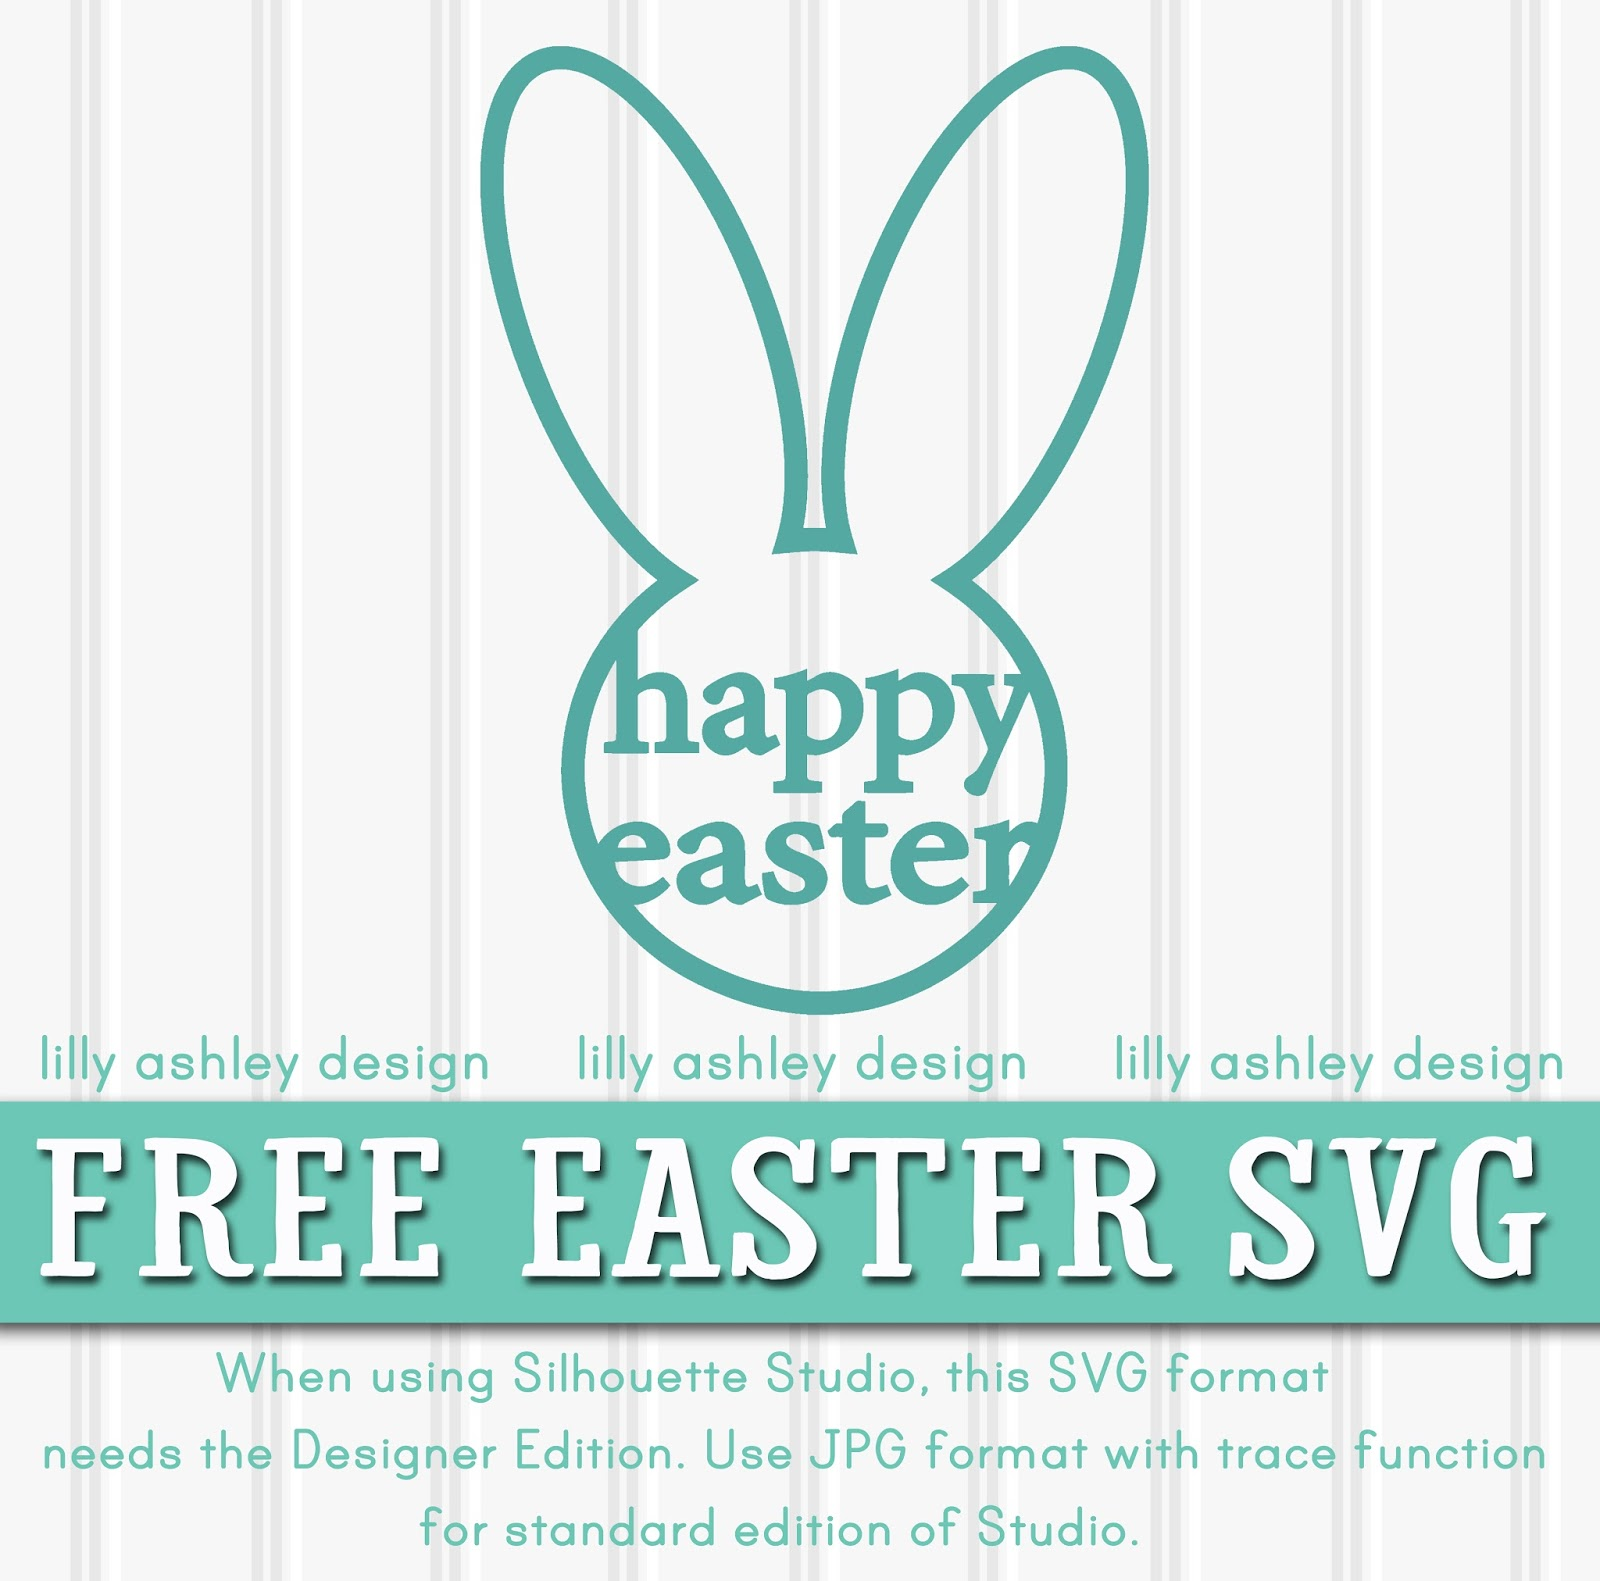 Free Easter Silhouette Designs